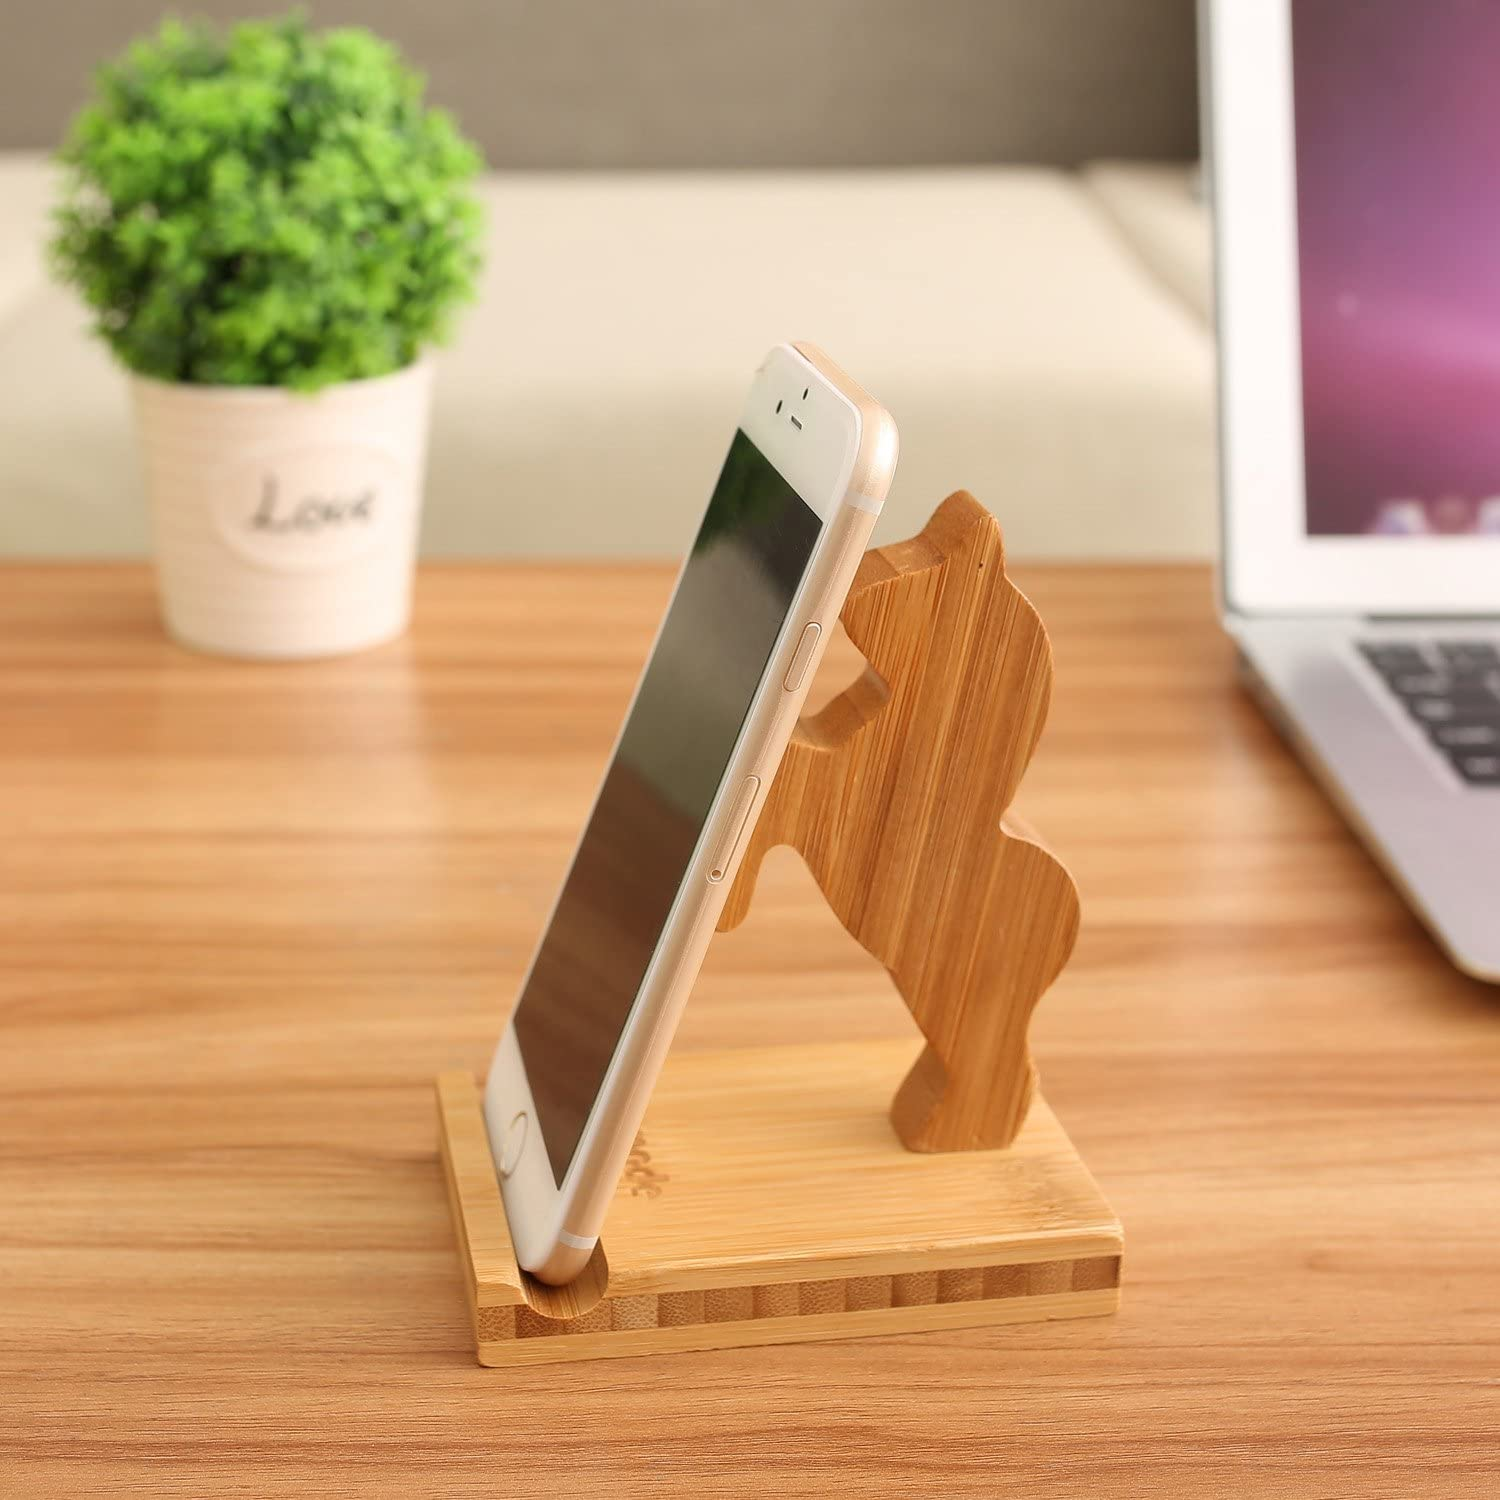 Bamboo Wood Phone Holder and Cute Phone Stand Compatible with iPhone 11 Pro X Plus 8 7 6 Kung fu Ipad and Tablets Bamboo Desk Organizer Accessories Homode Cell Phone Stand